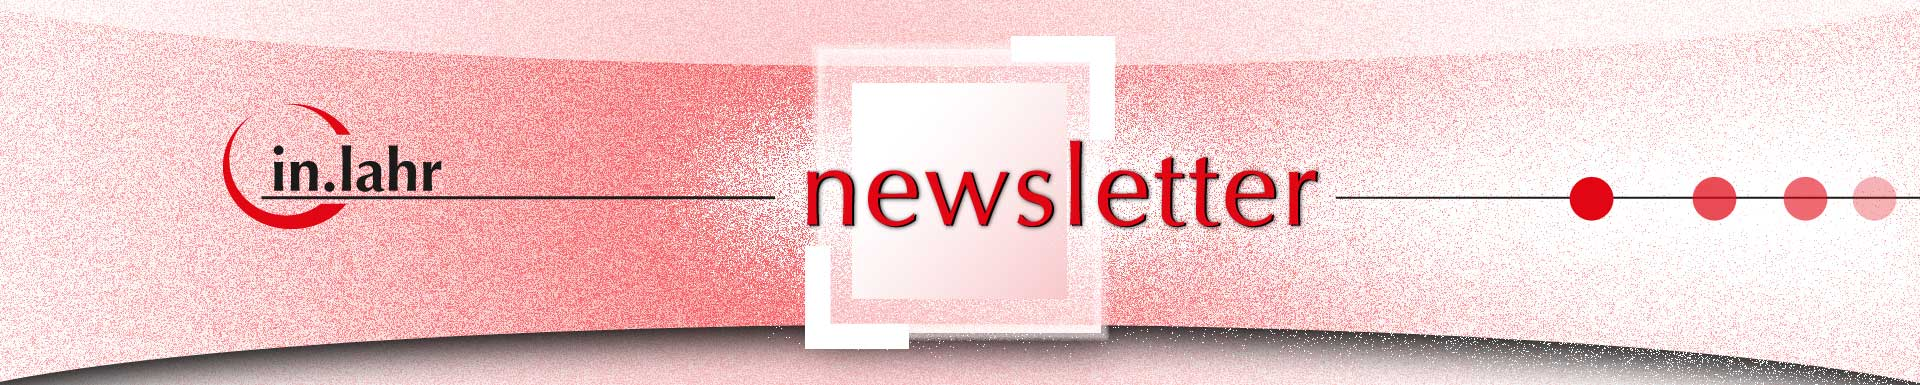 Newsletter in.lahr